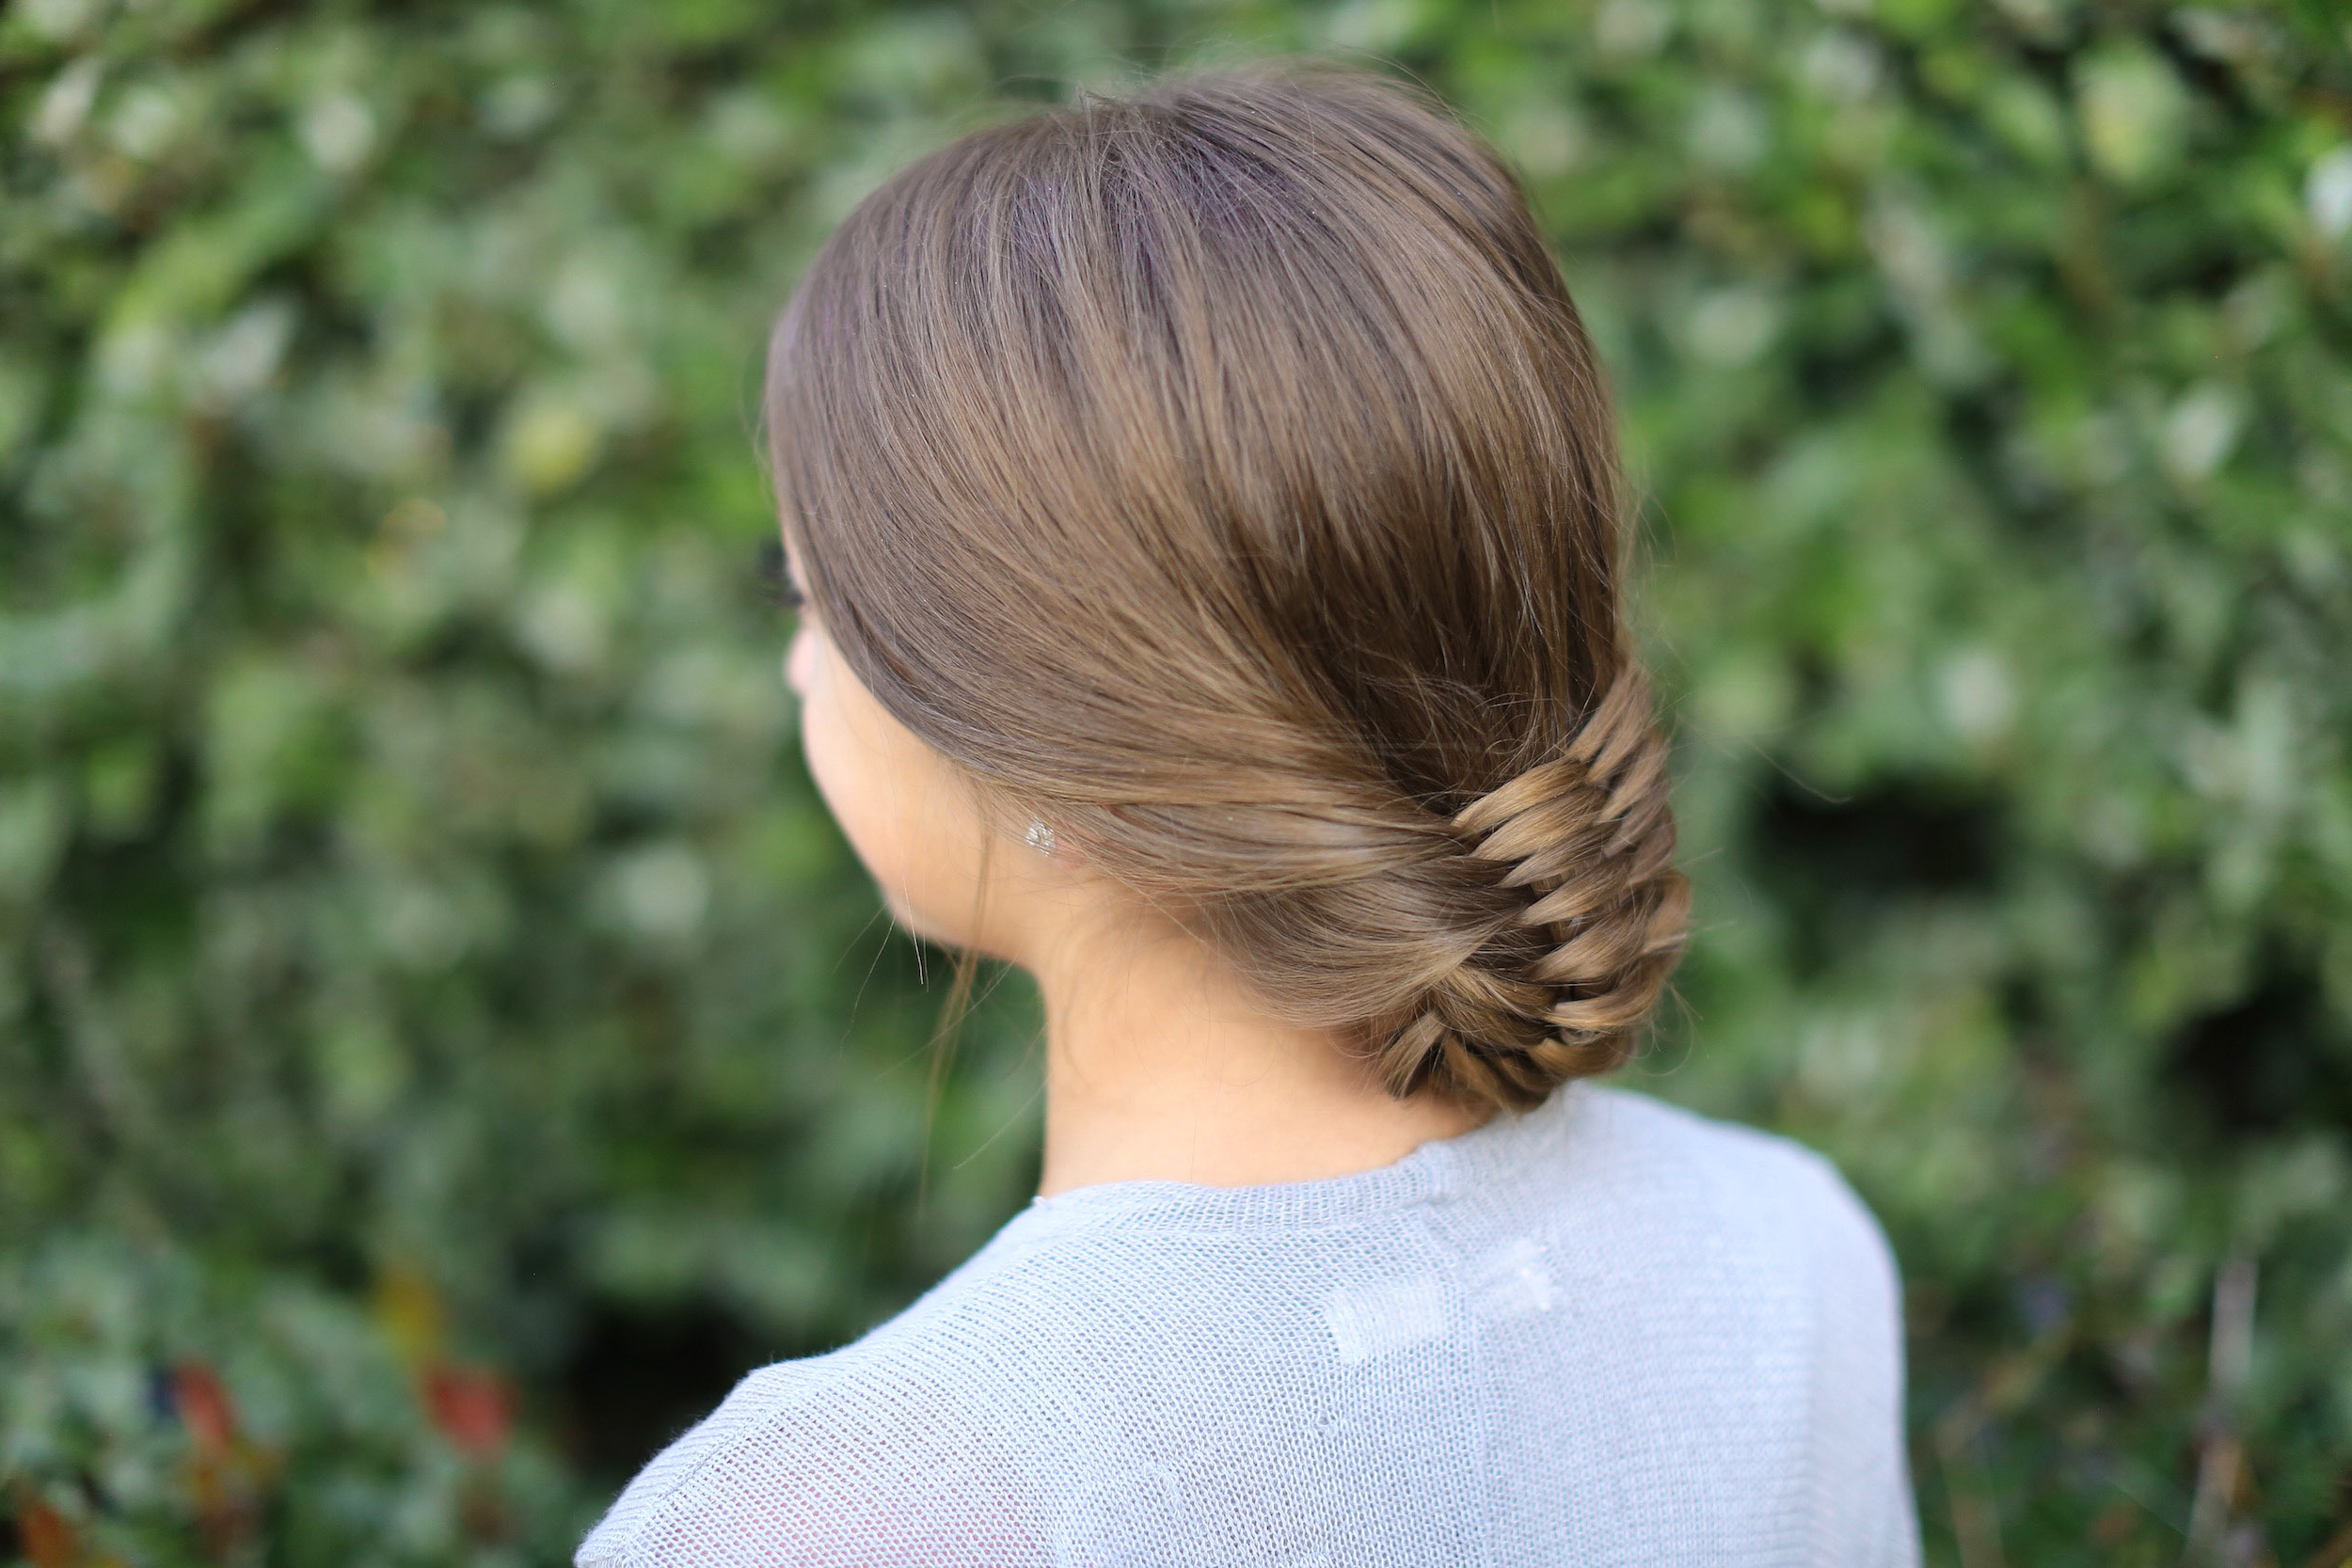 Cute Girls Hairstyles Throughout Famous Brown Woven Updo Braid Hairstyles (View 15 of 20)